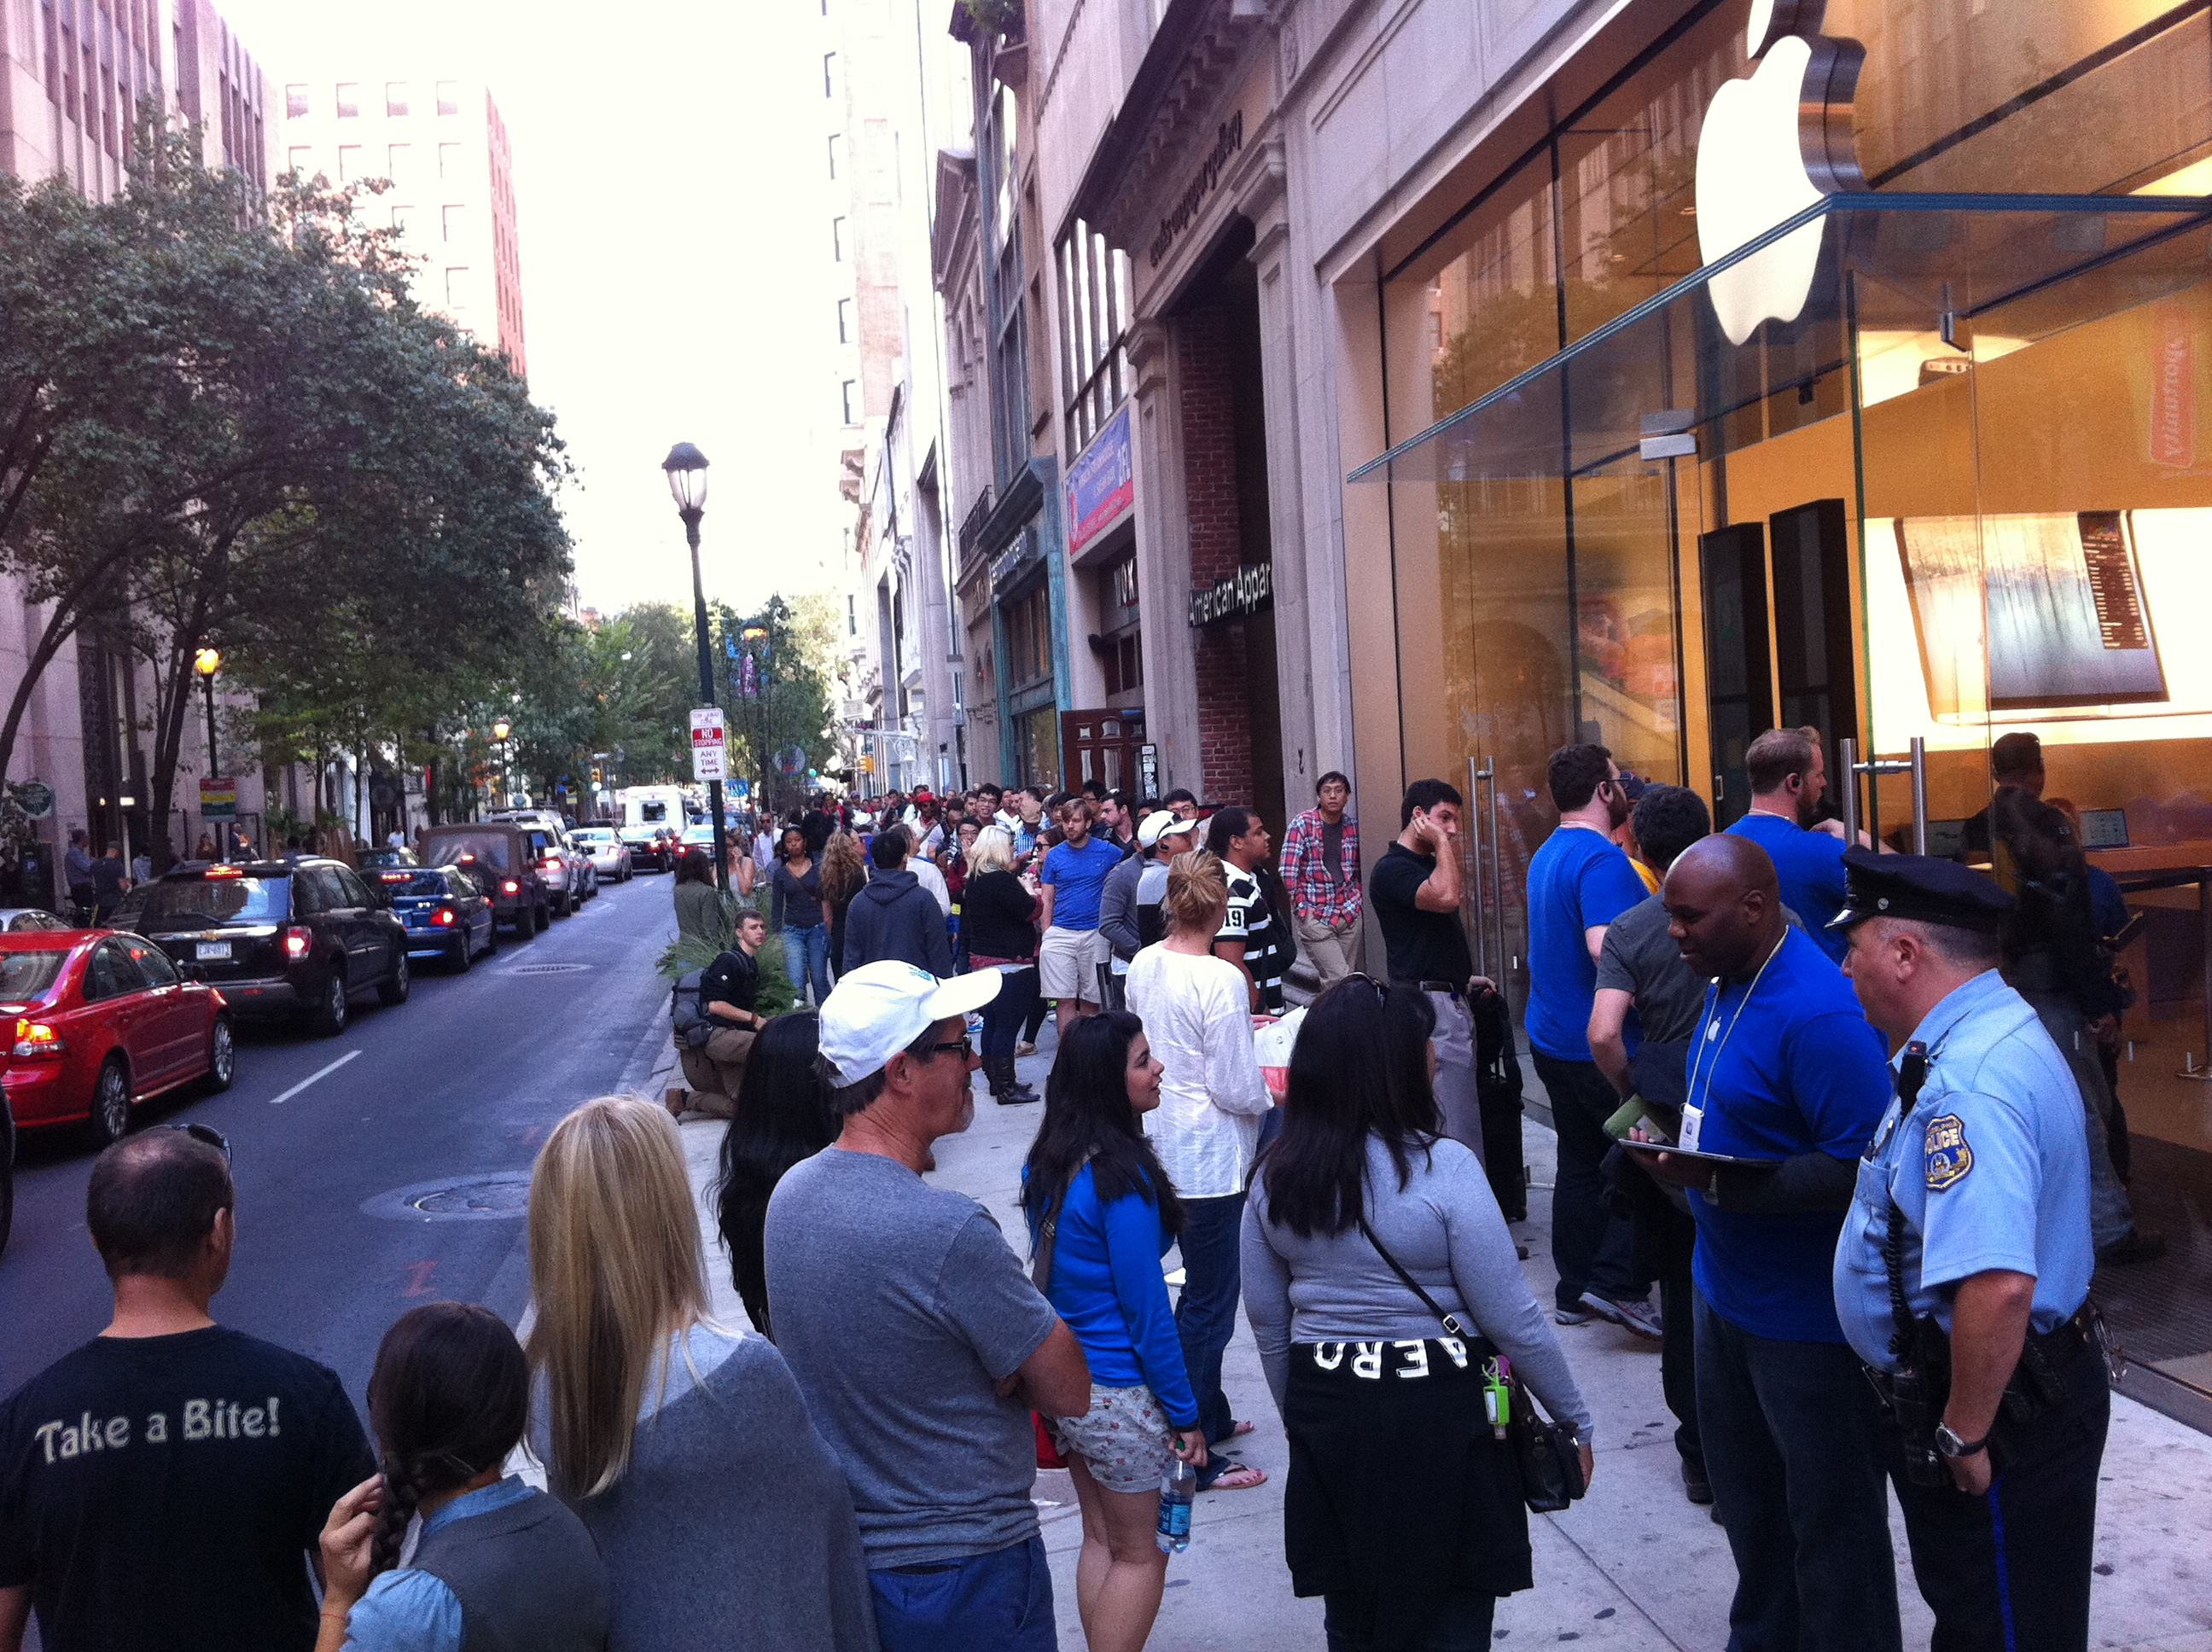 The queue outside Philadelphia's Walnute Street Apple Store for the iPhone 5 launch.